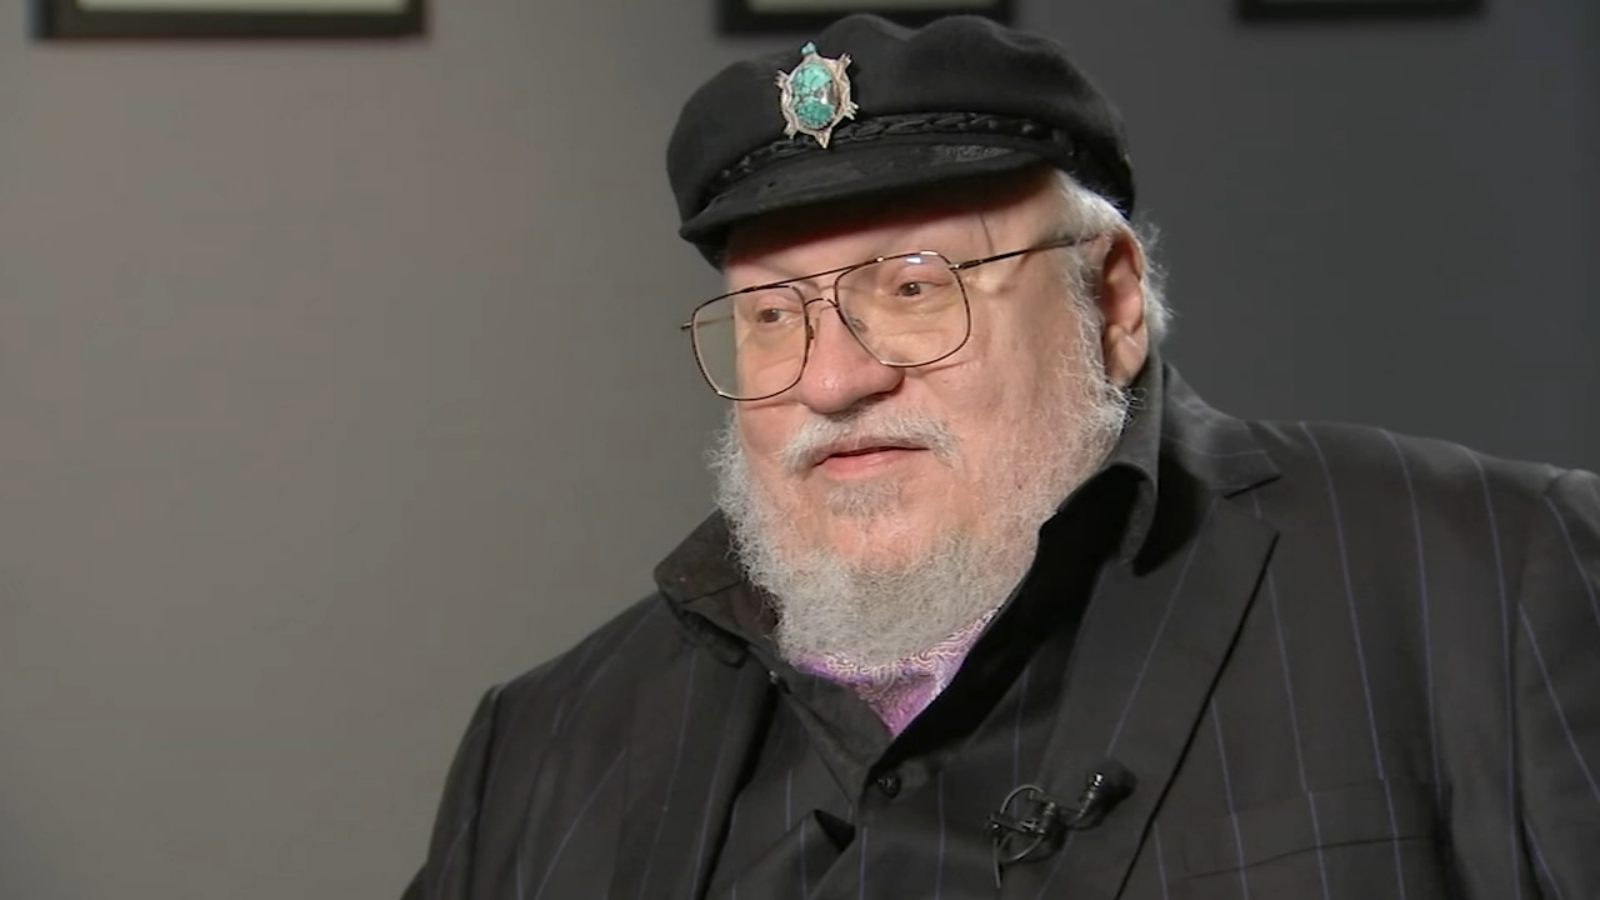 George R.R. Martin says Chicago, NU influenced 'A Song of Ice and Fire,' in town to receive literary award